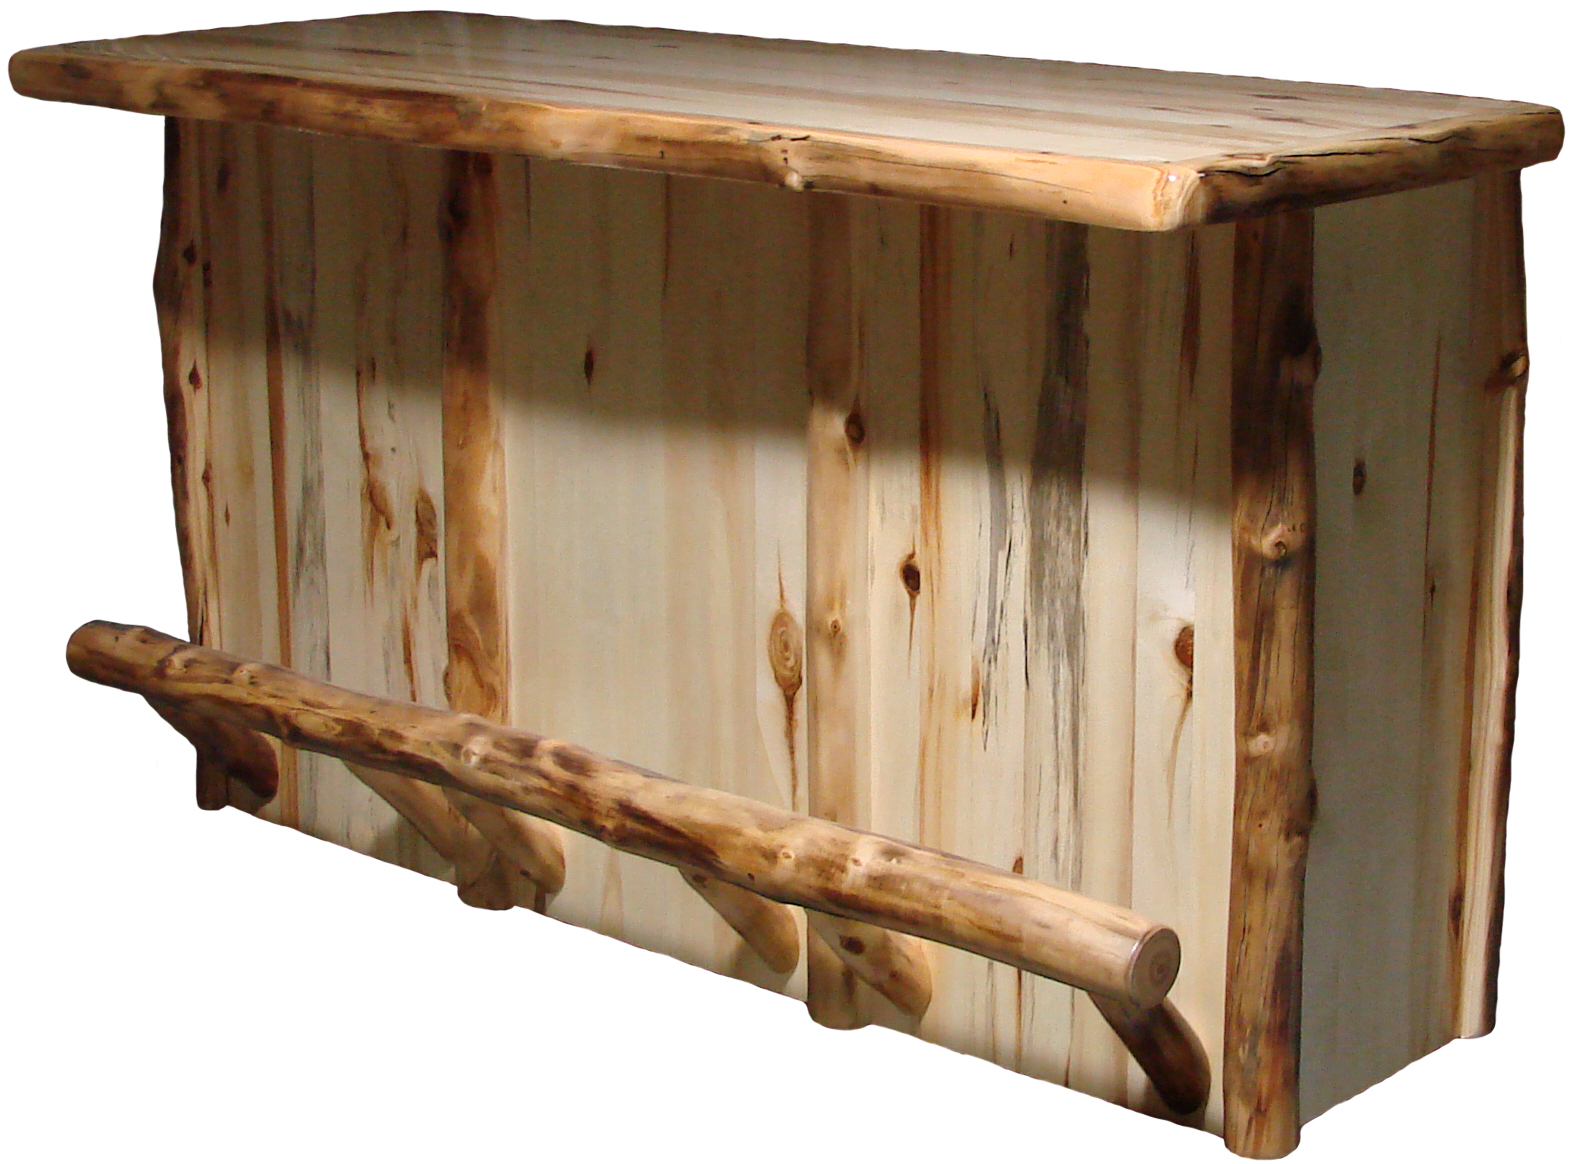 Aspen Half Log Bar Rustic Furniture Mall By Timber Creek